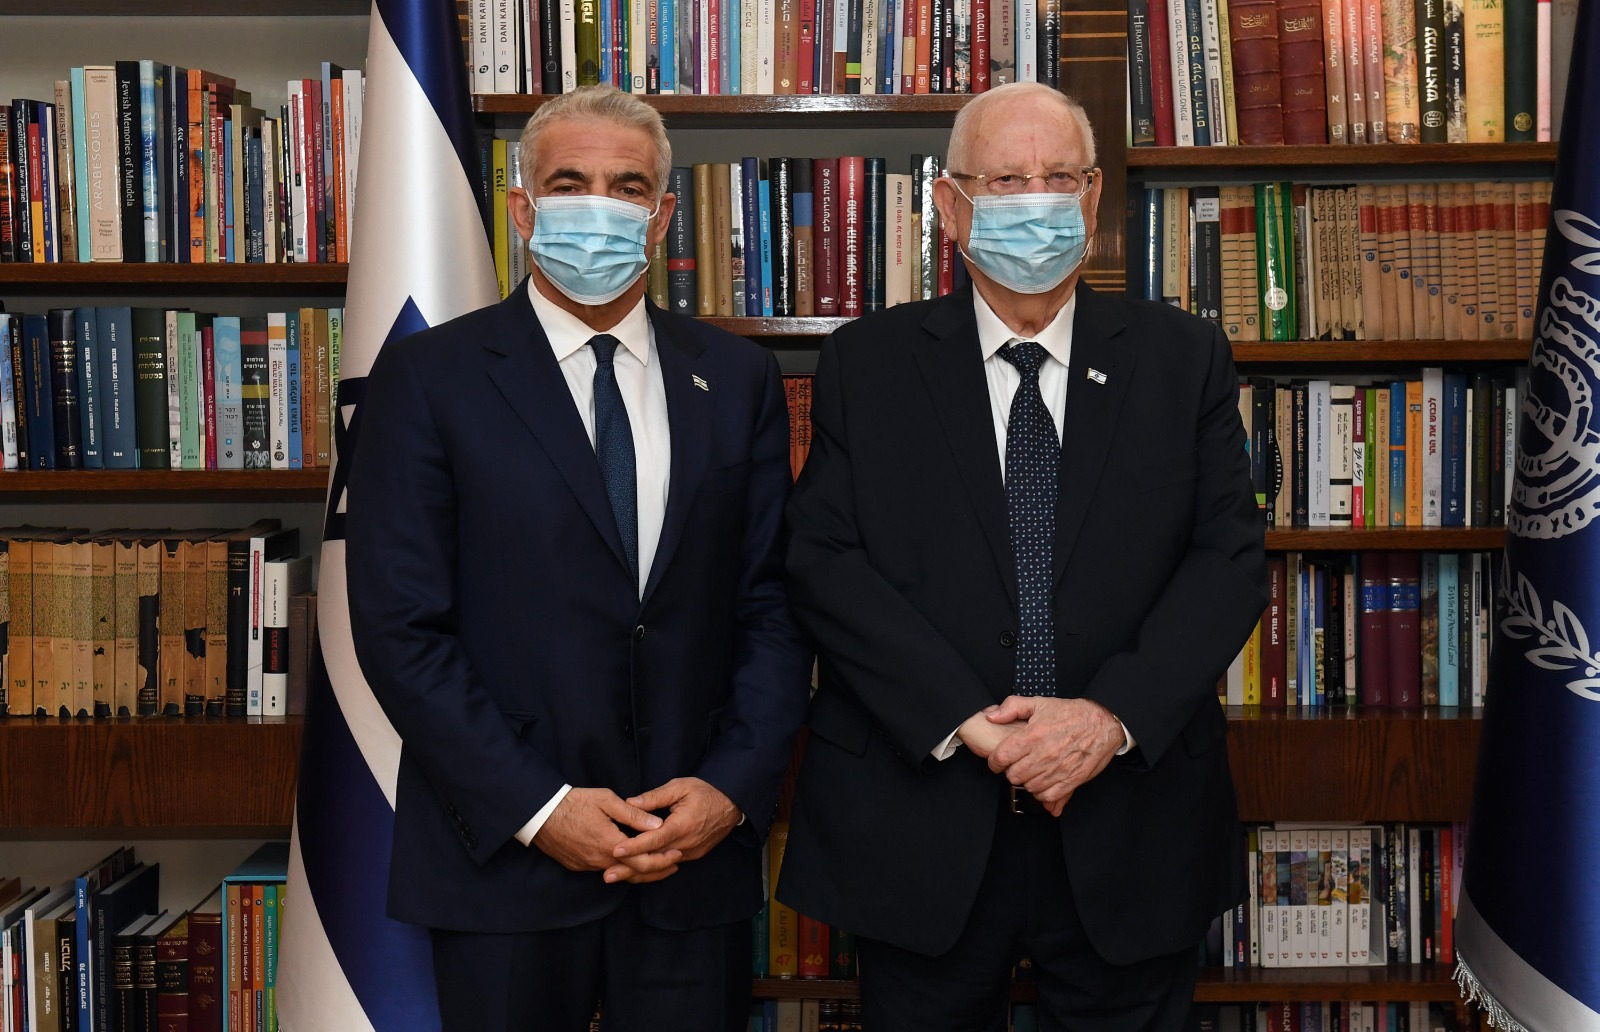 Daily Kickoff: Lapid, Bennett vie for shot at coalition + The Sikh mayor fighting antisemitism